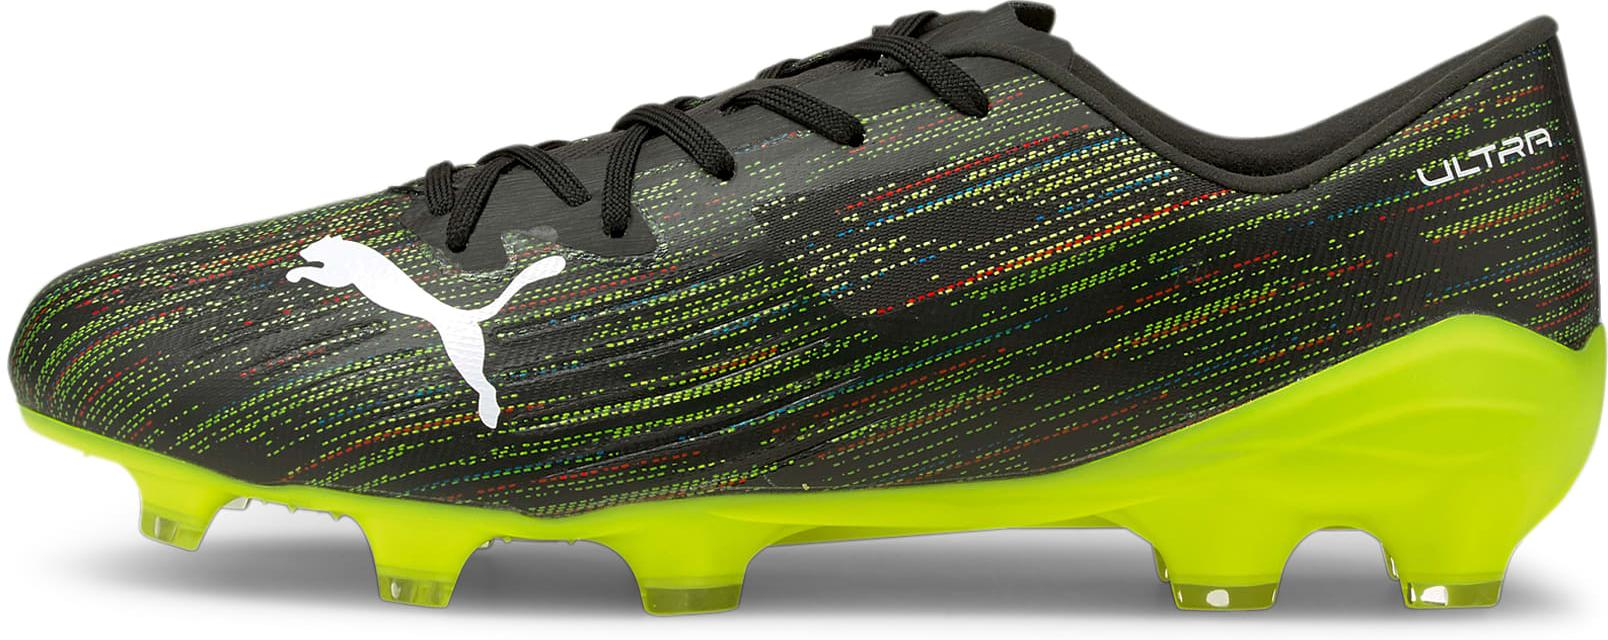 Chaussures de football Puma ULTRA 2.2 FG AG